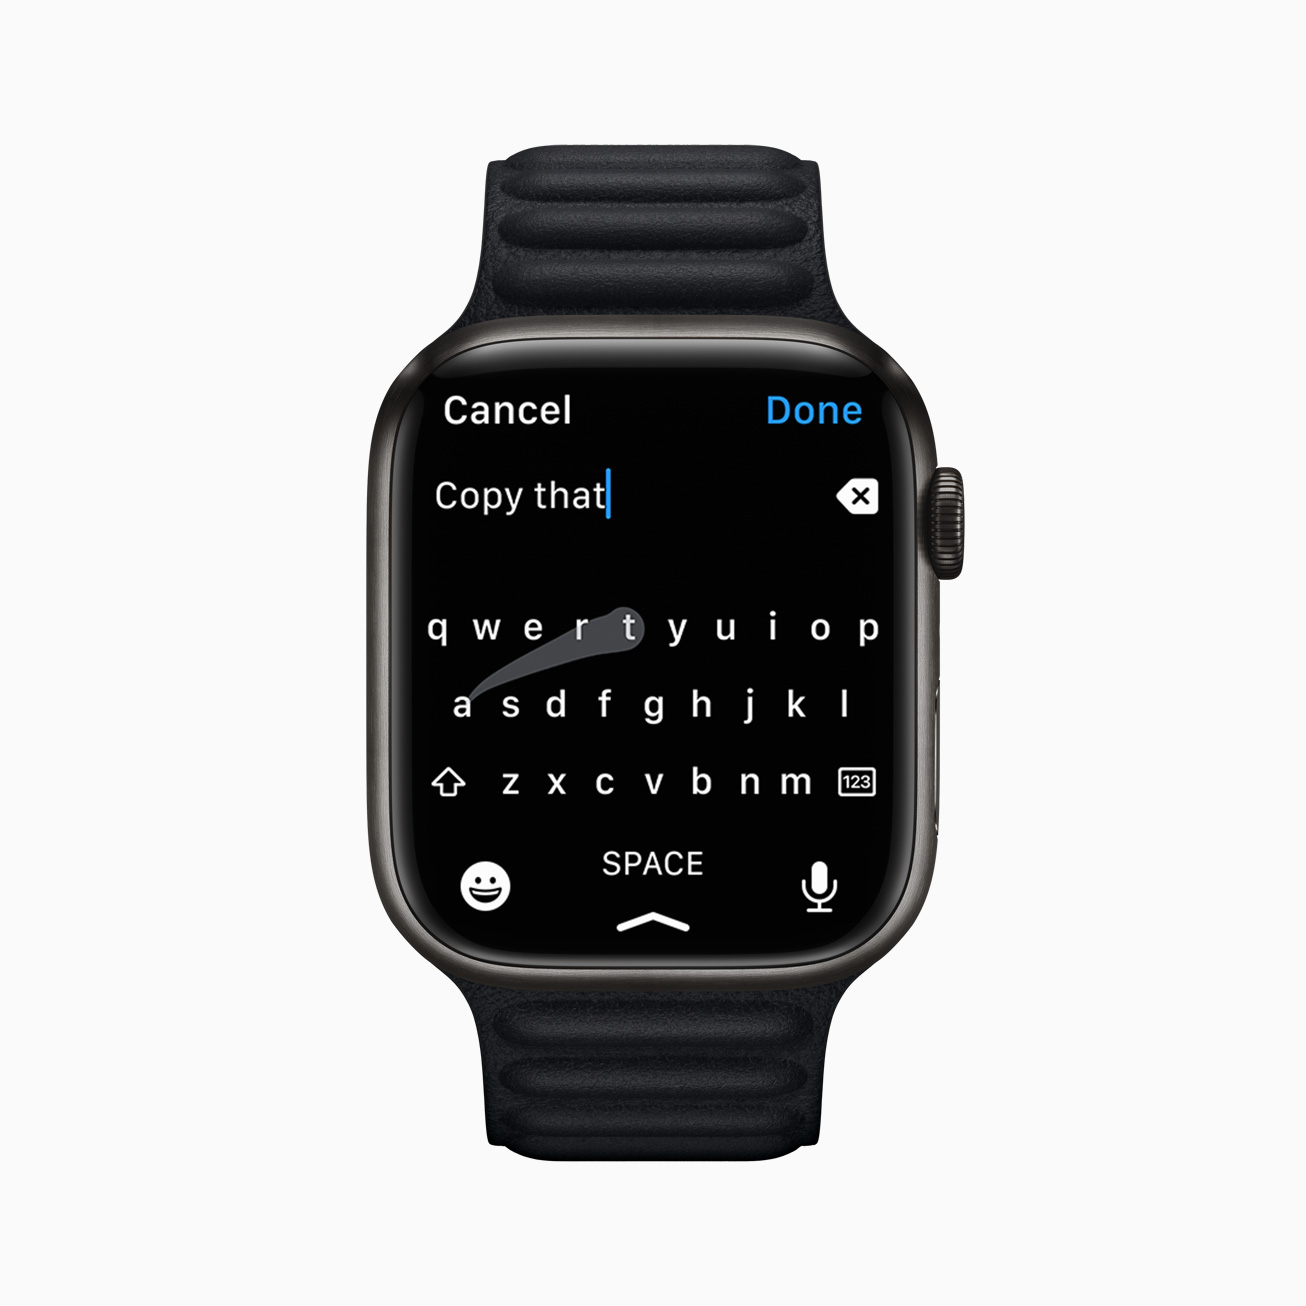 """""""Copy that"""": Developer to sue over Apple Watch keyboard resembling his rejected app"""